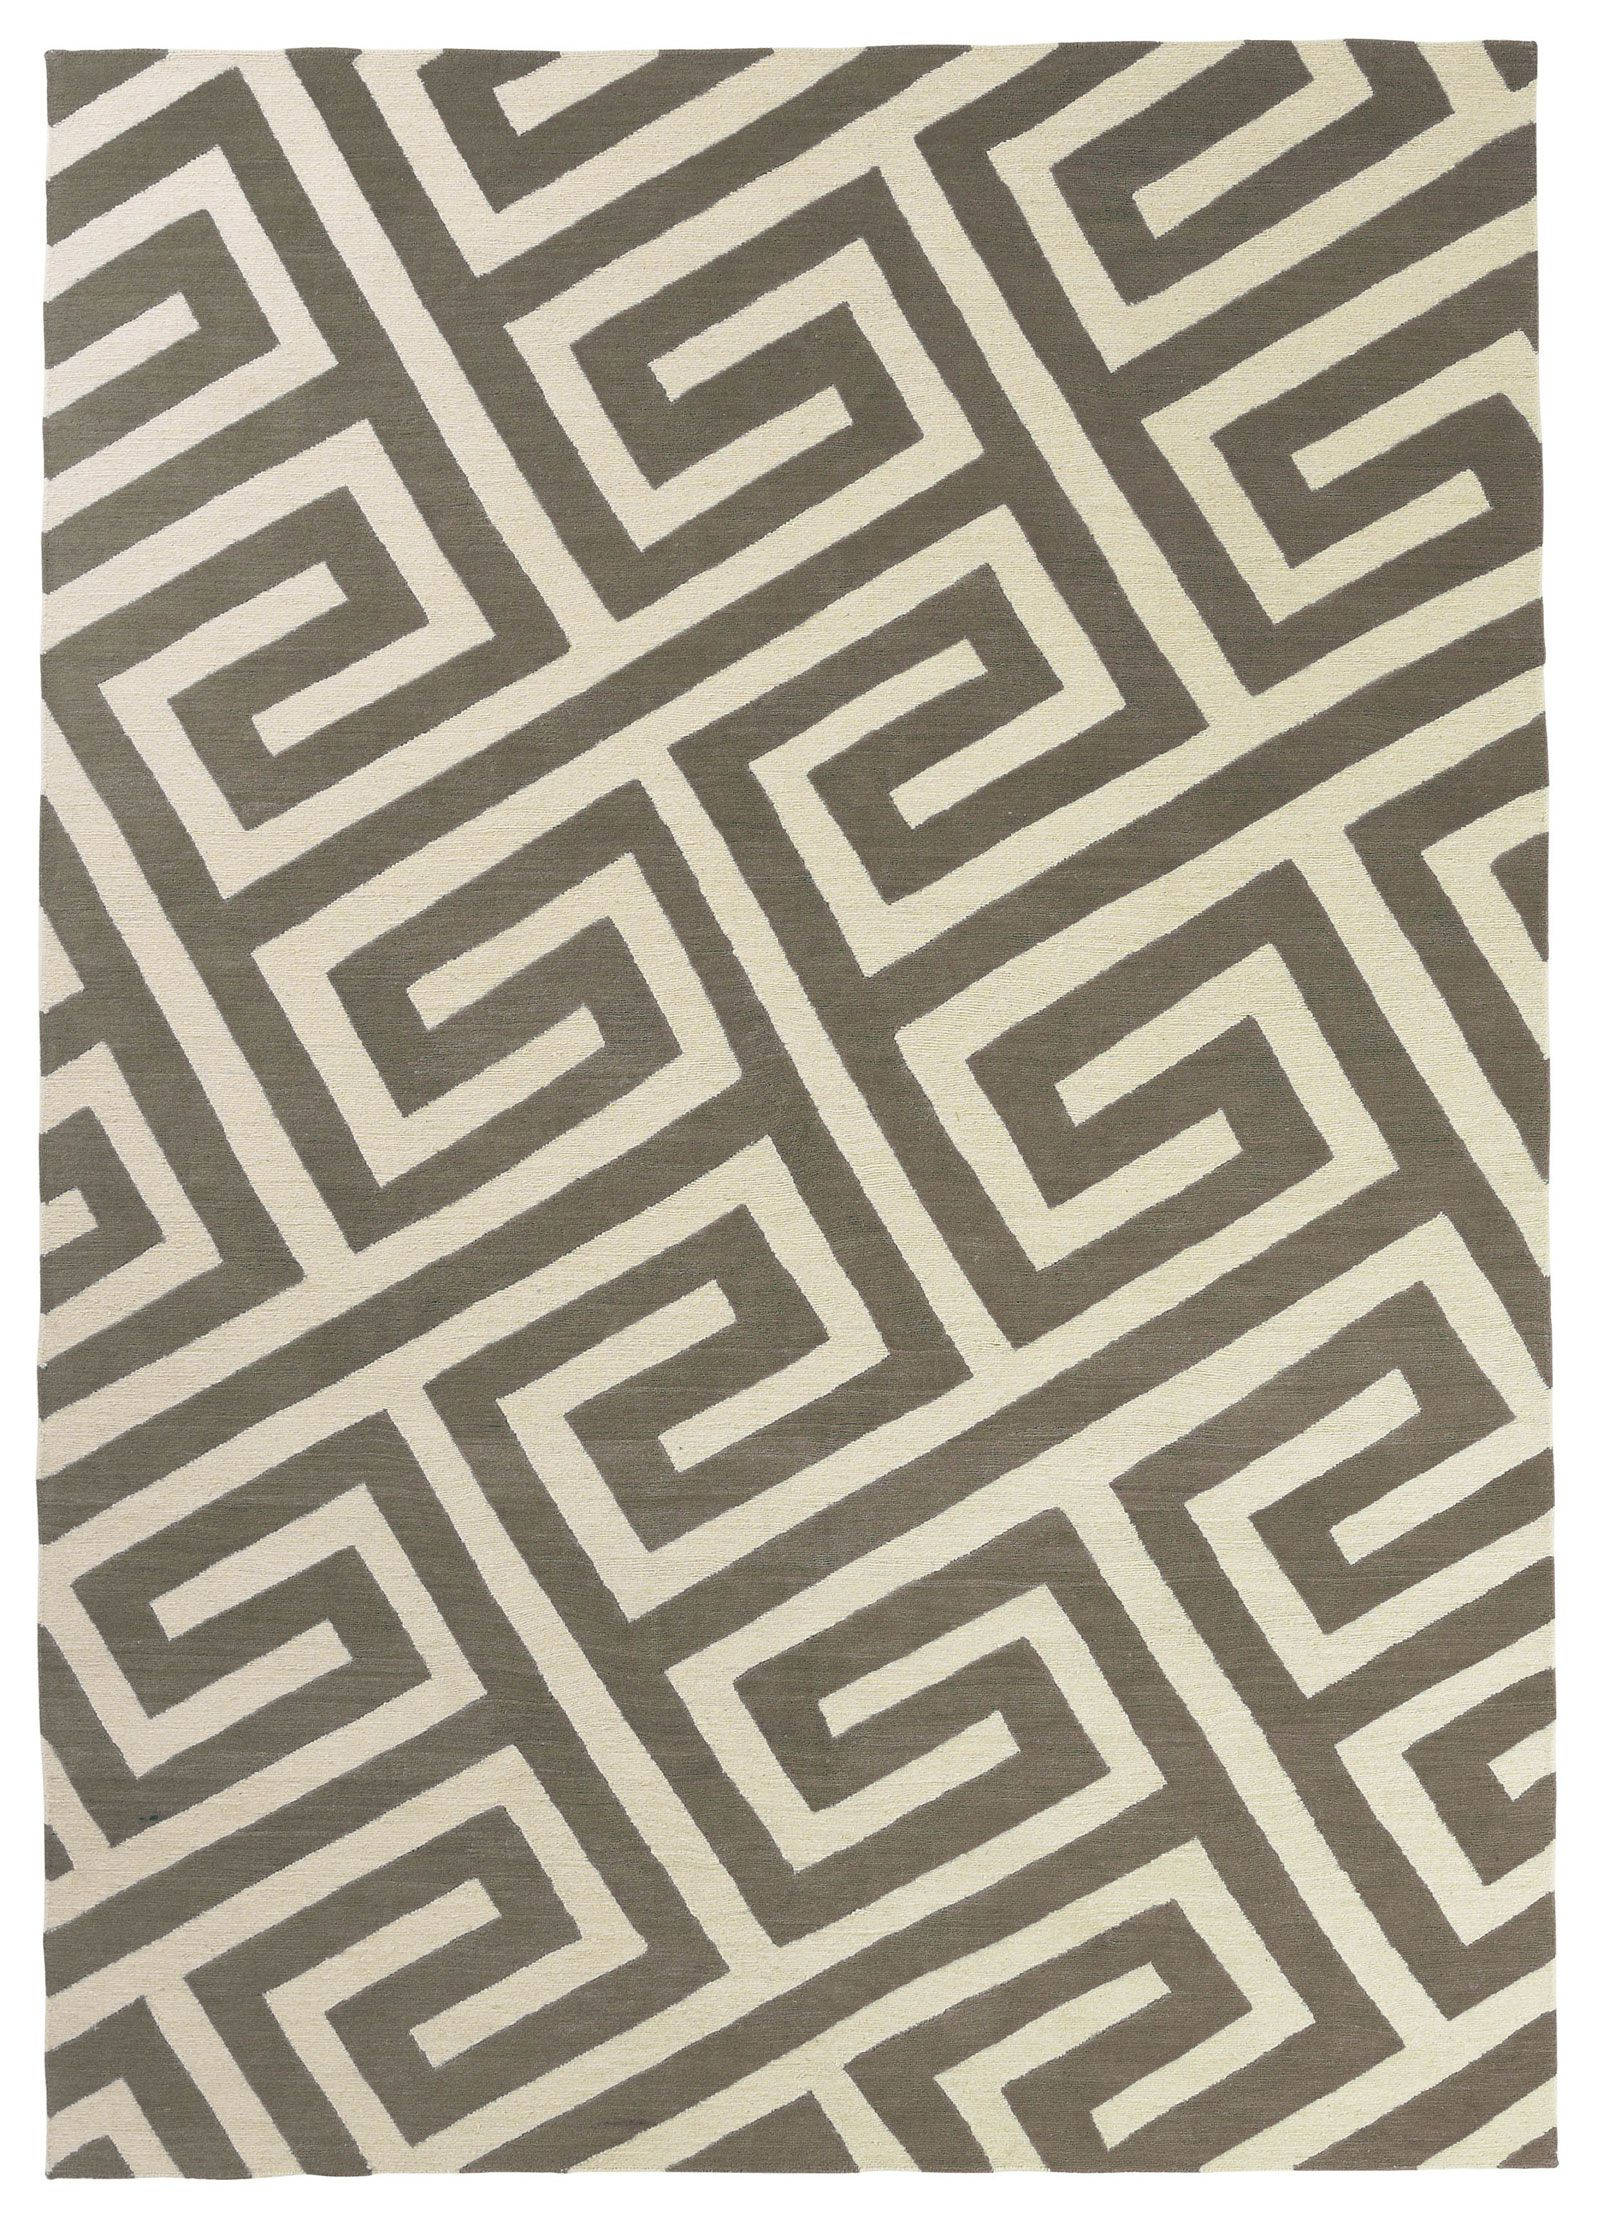 Hand Knotted Wool Rug Key Brown Rug Company Contemporary Area Rugs Rugs Uk